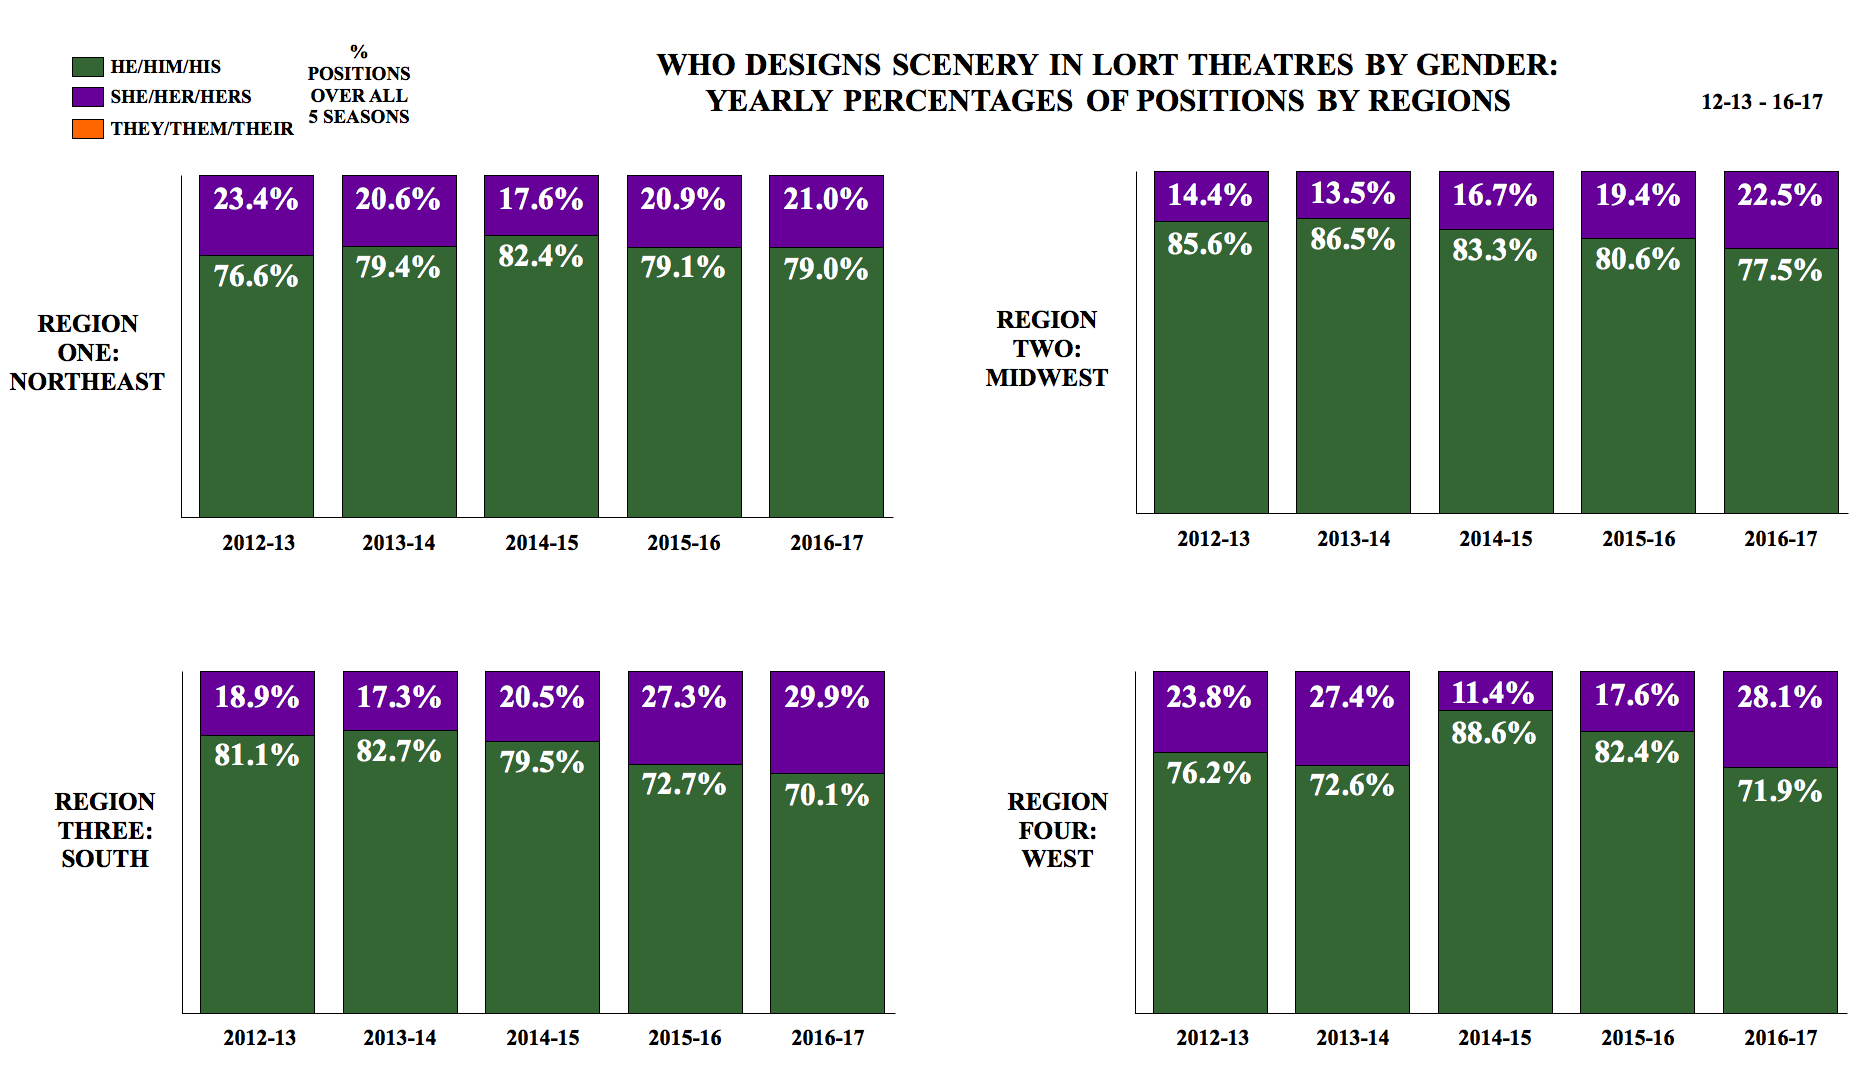 Who Designs Scenery in LORT Theatres by Gender: Yearly Percentages of Positions by Regions